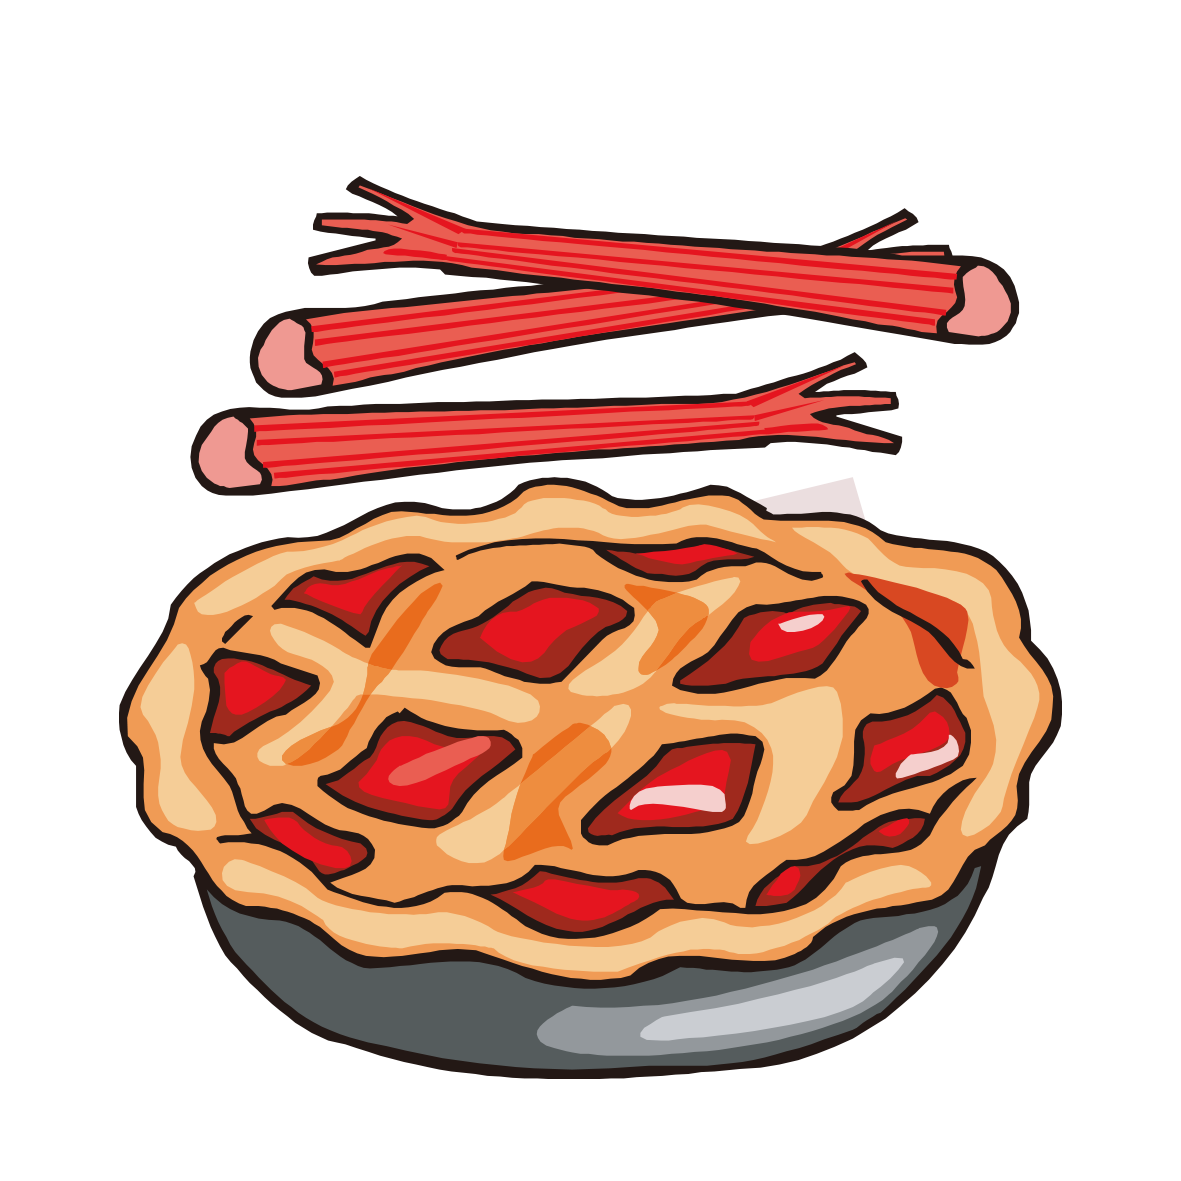 Clipart pumpkin pie jpg freeuse library Rhubarb pie Strawberry pie Pumpkin pie Apple pie Clip art - Bacon ... jpg freeuse library